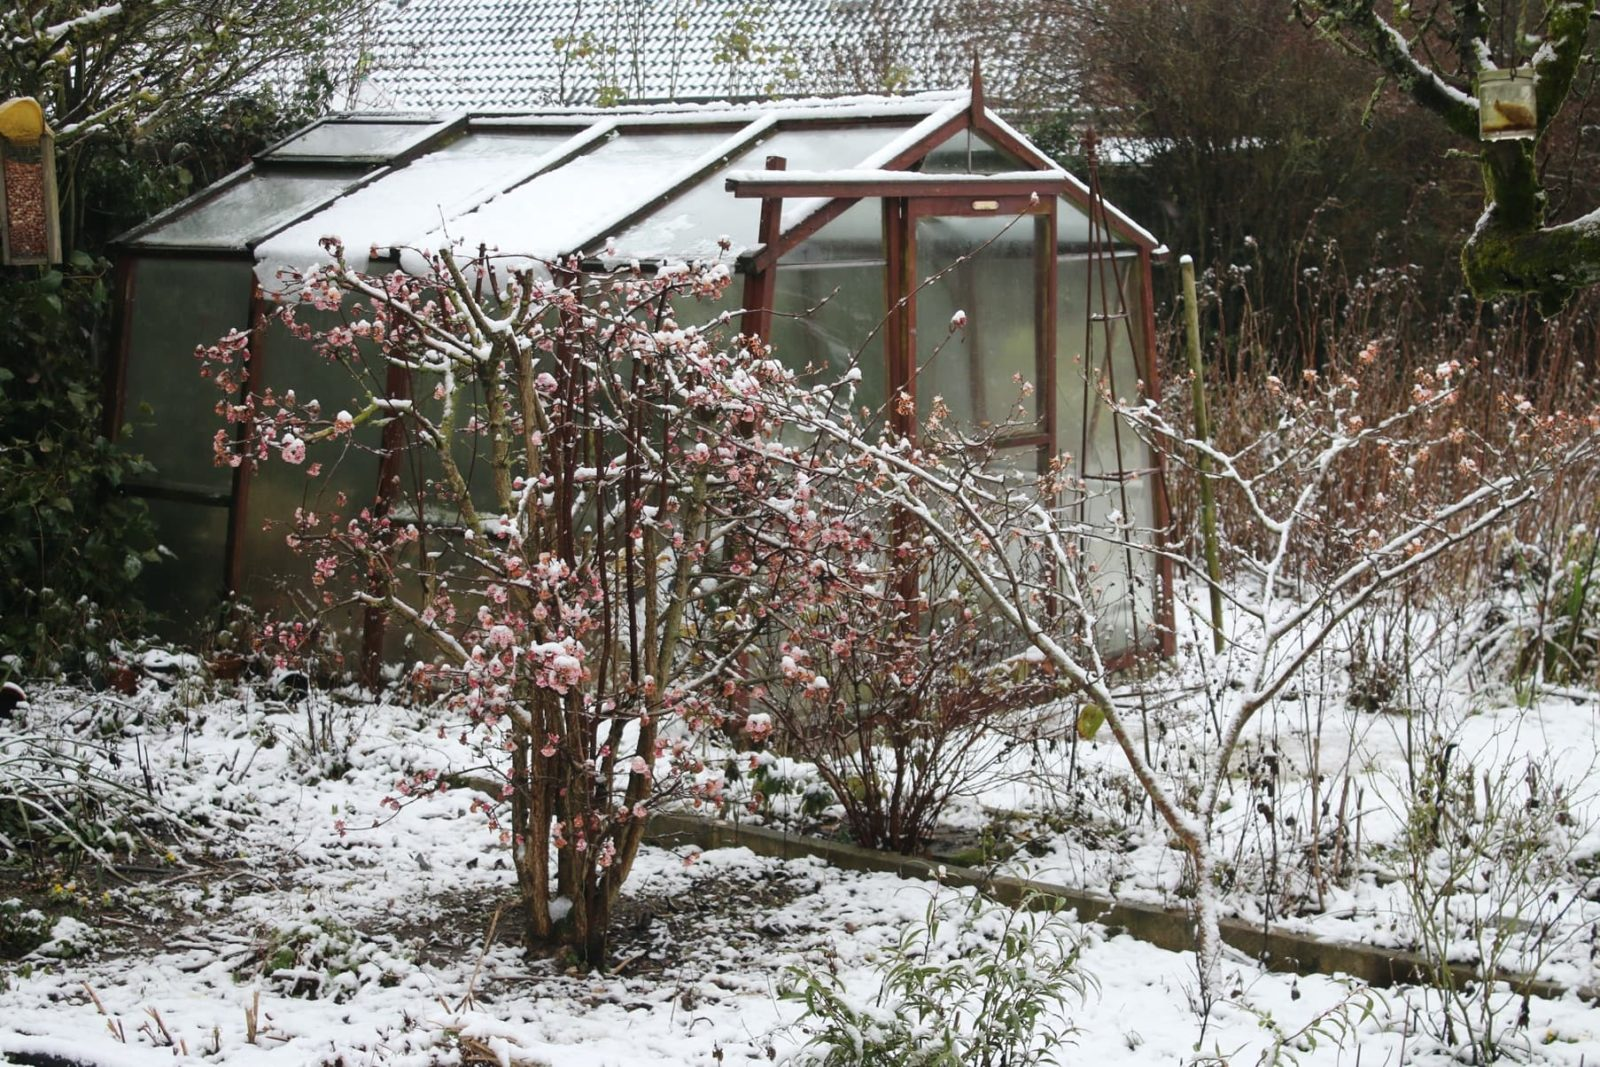 garden greenhouse covered in ice and snow during winter